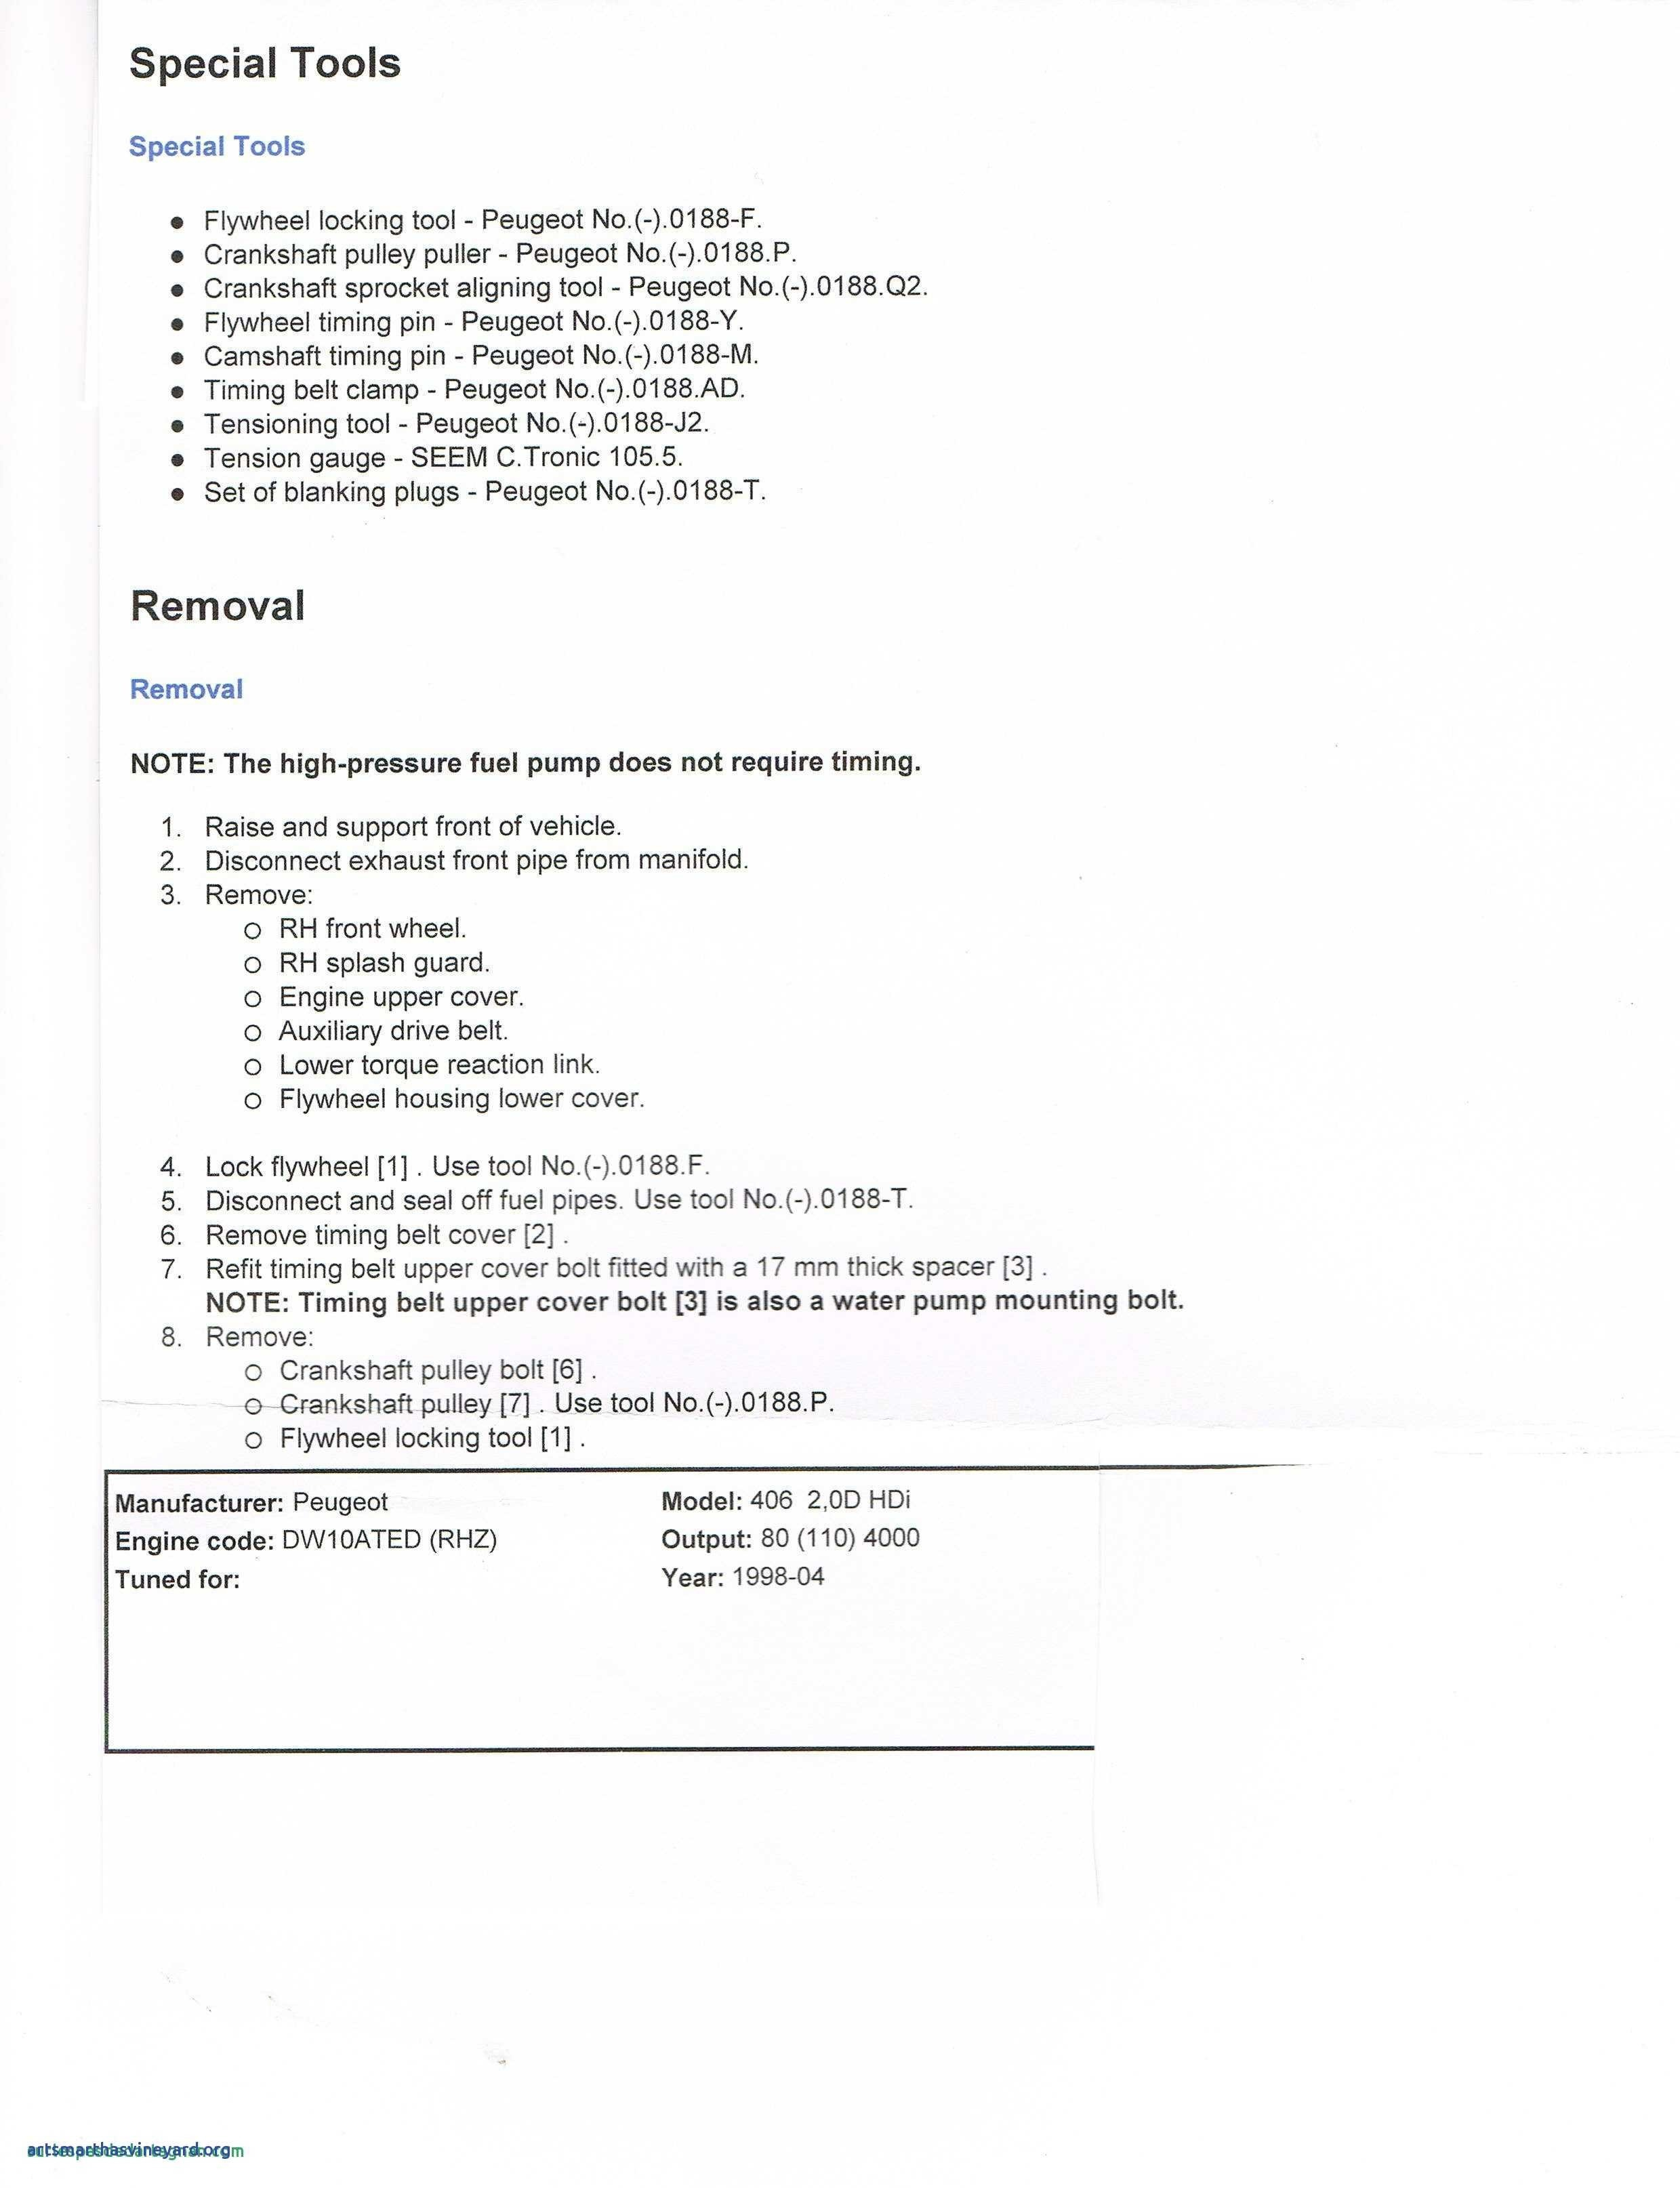 Business Quarterly Report Template Valid New  Business Report With Business Quarterly Report Template